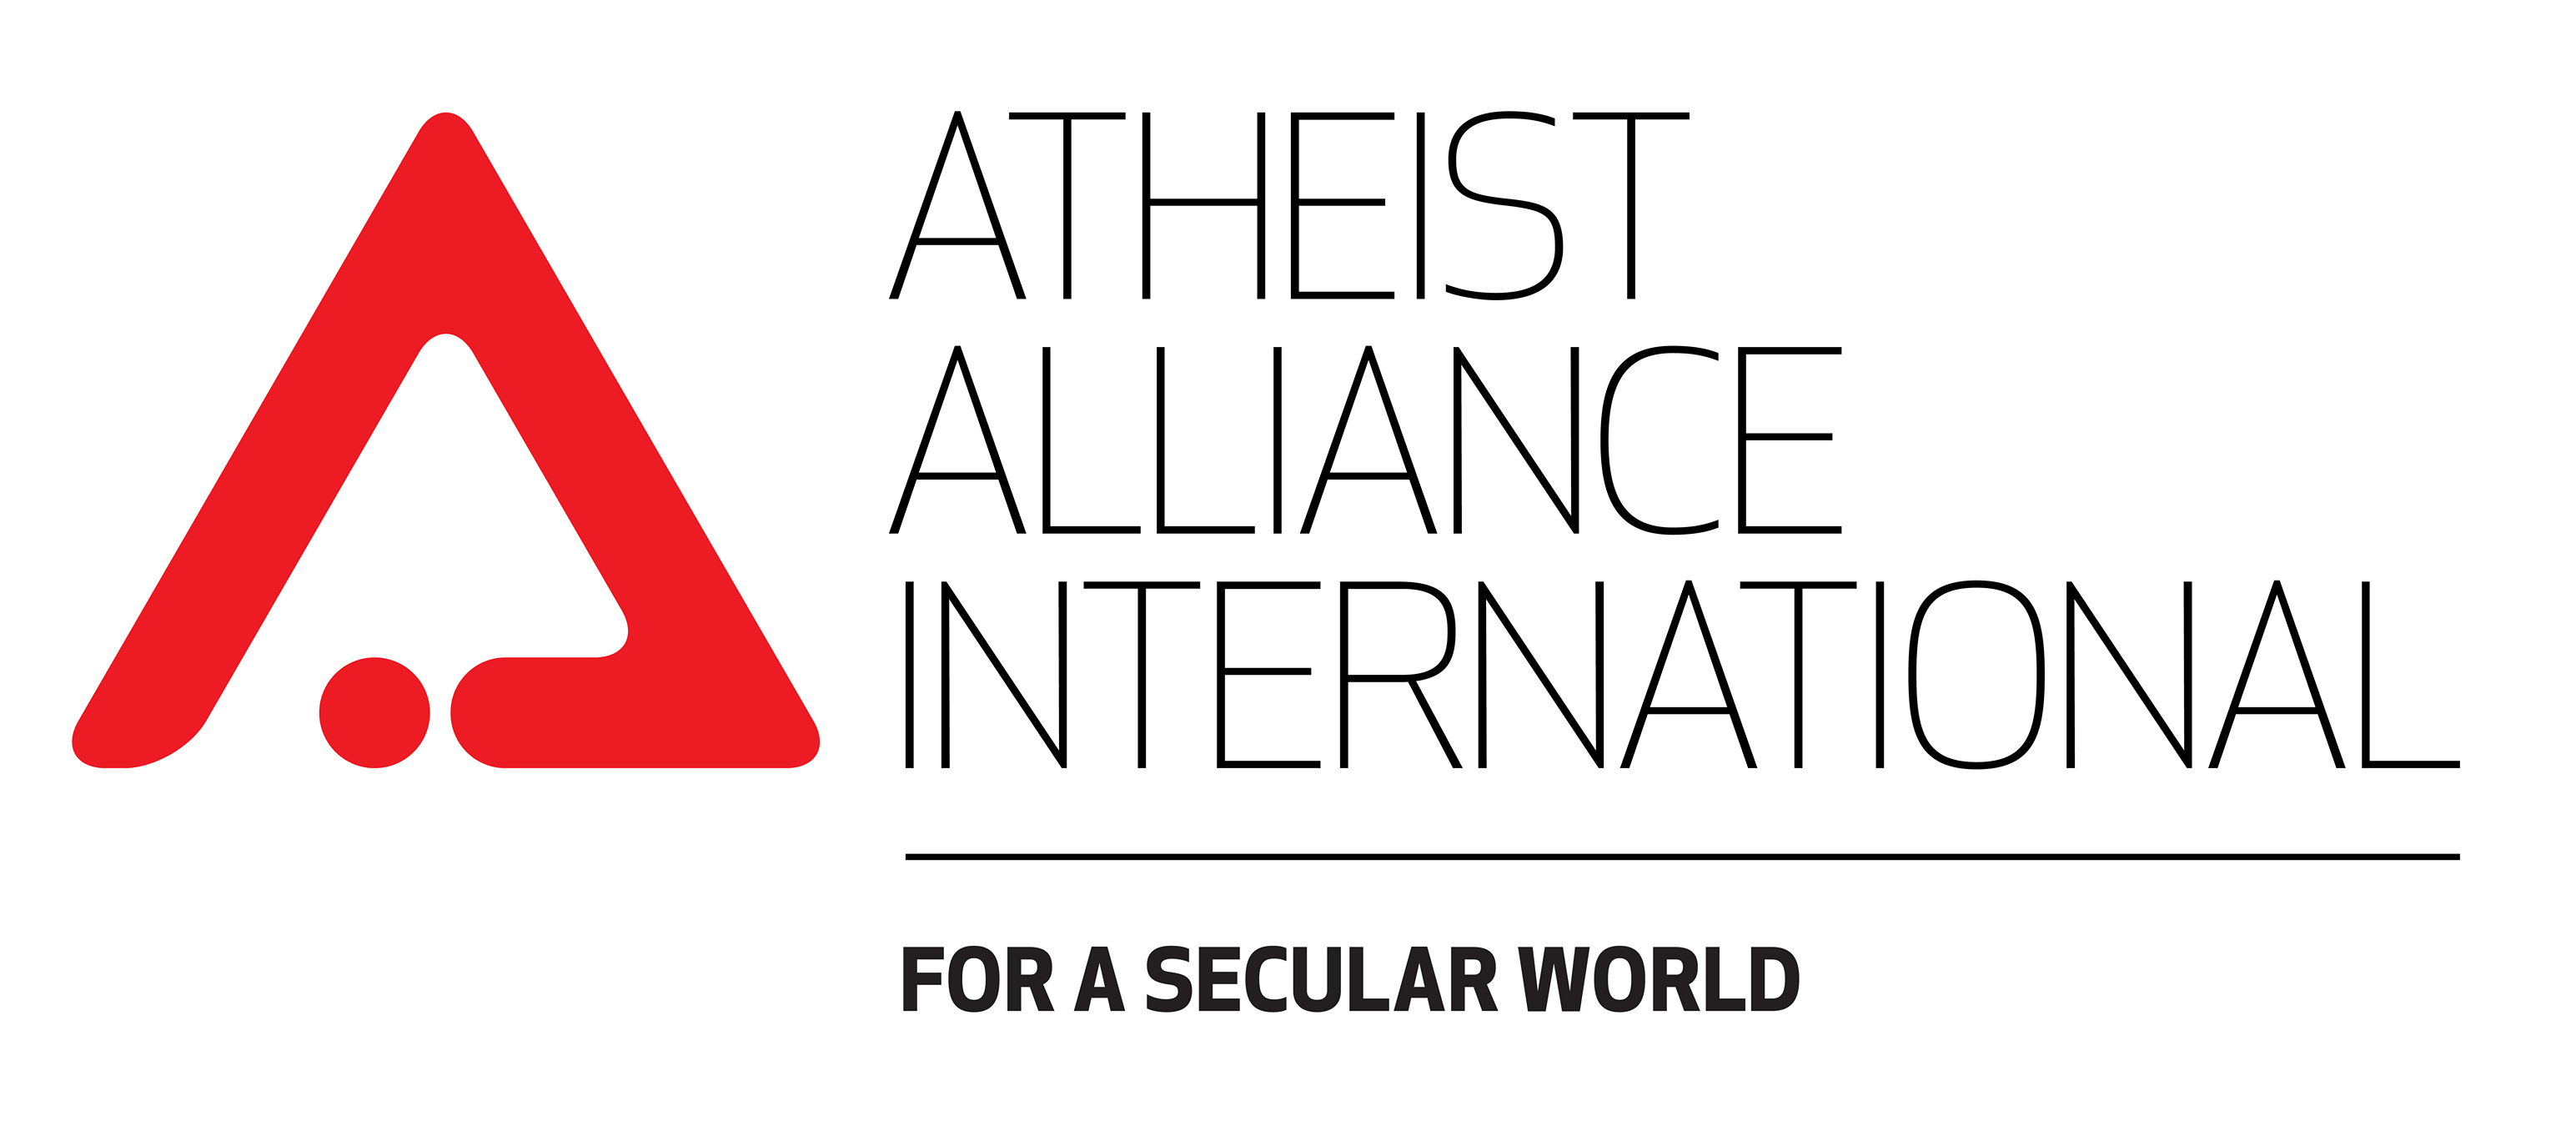 atheist-alliance-international